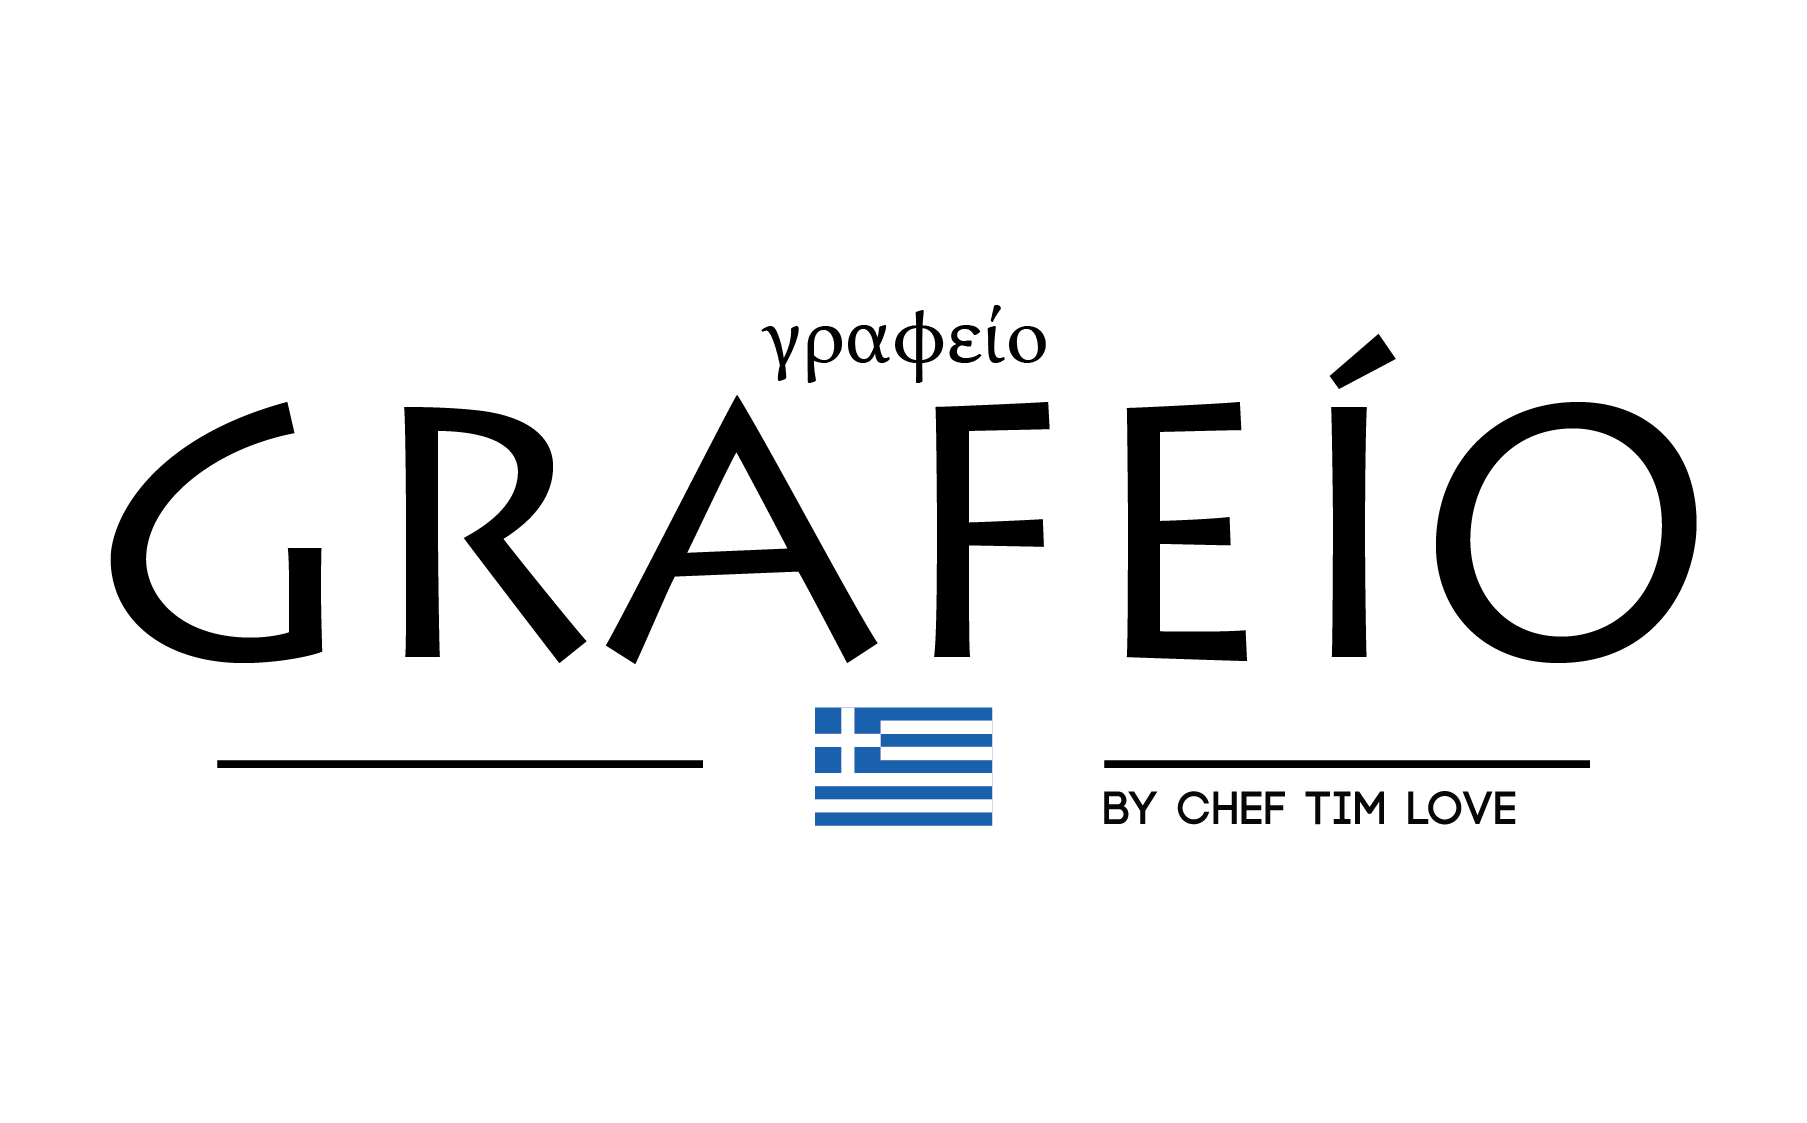 Announcing Chef Tim Love's 2019 Pop-Up Restaurant: Grafeío